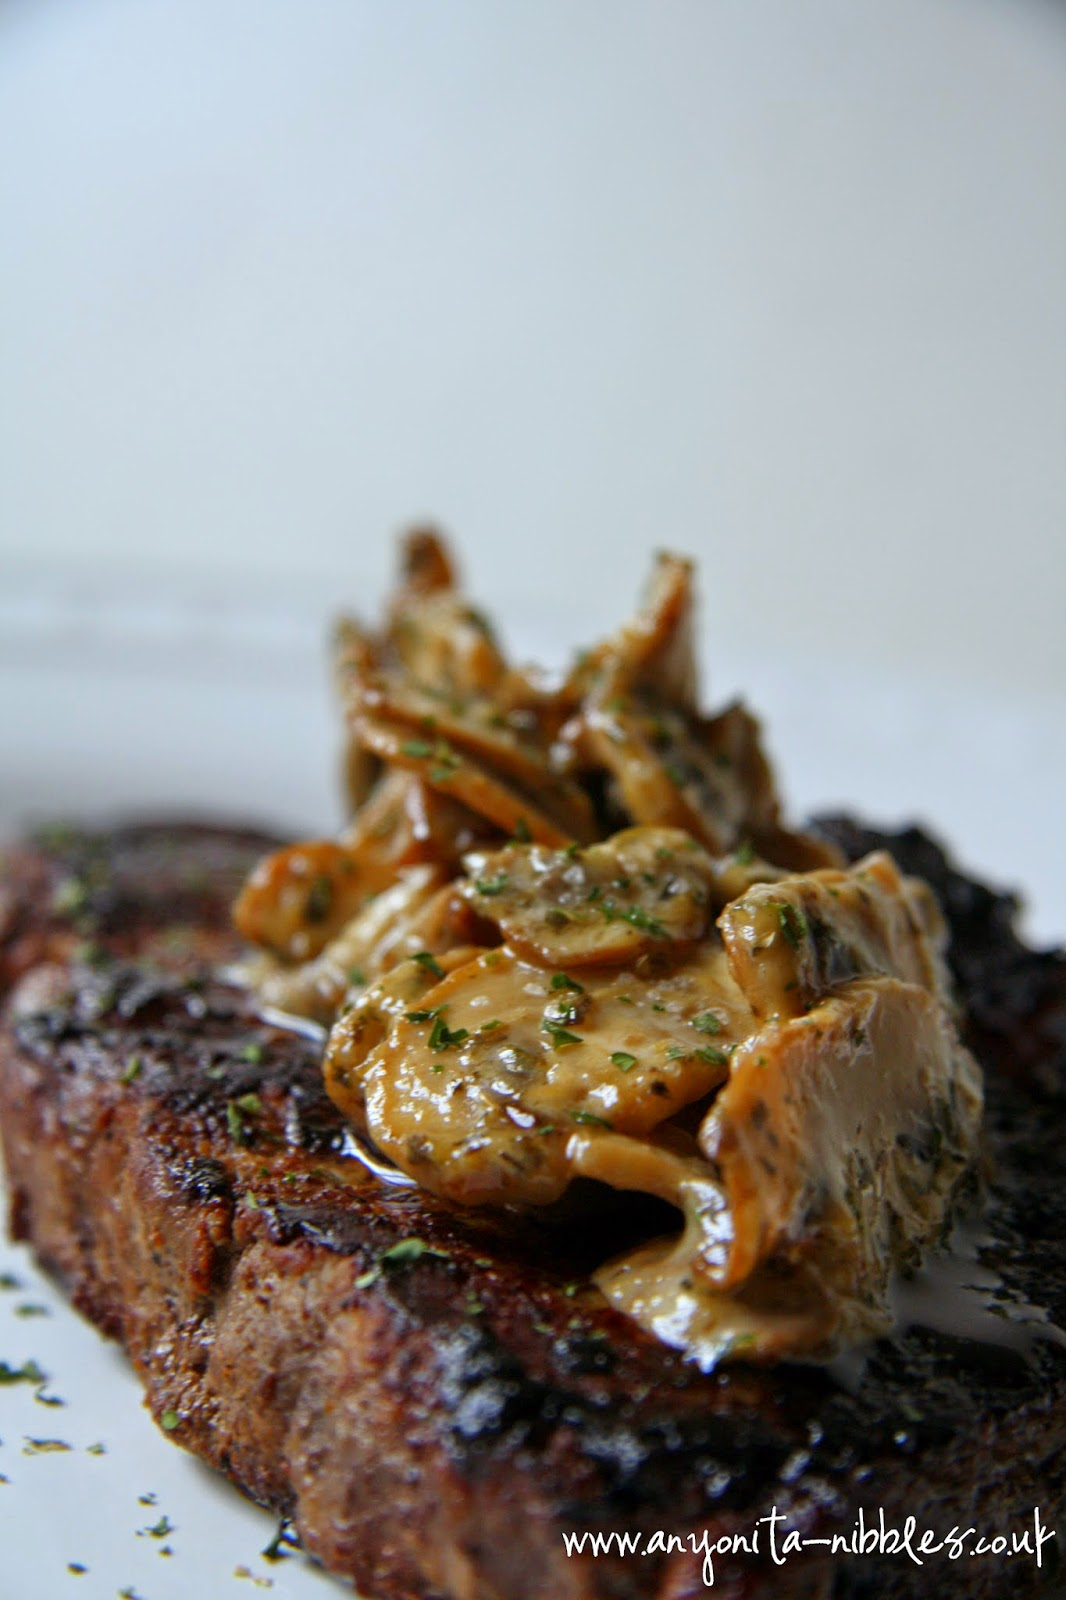 Perfectly cooked #sirloin with creamy #mushroom #duxelle #glutenfreerecipe from Anyonita Nibbles